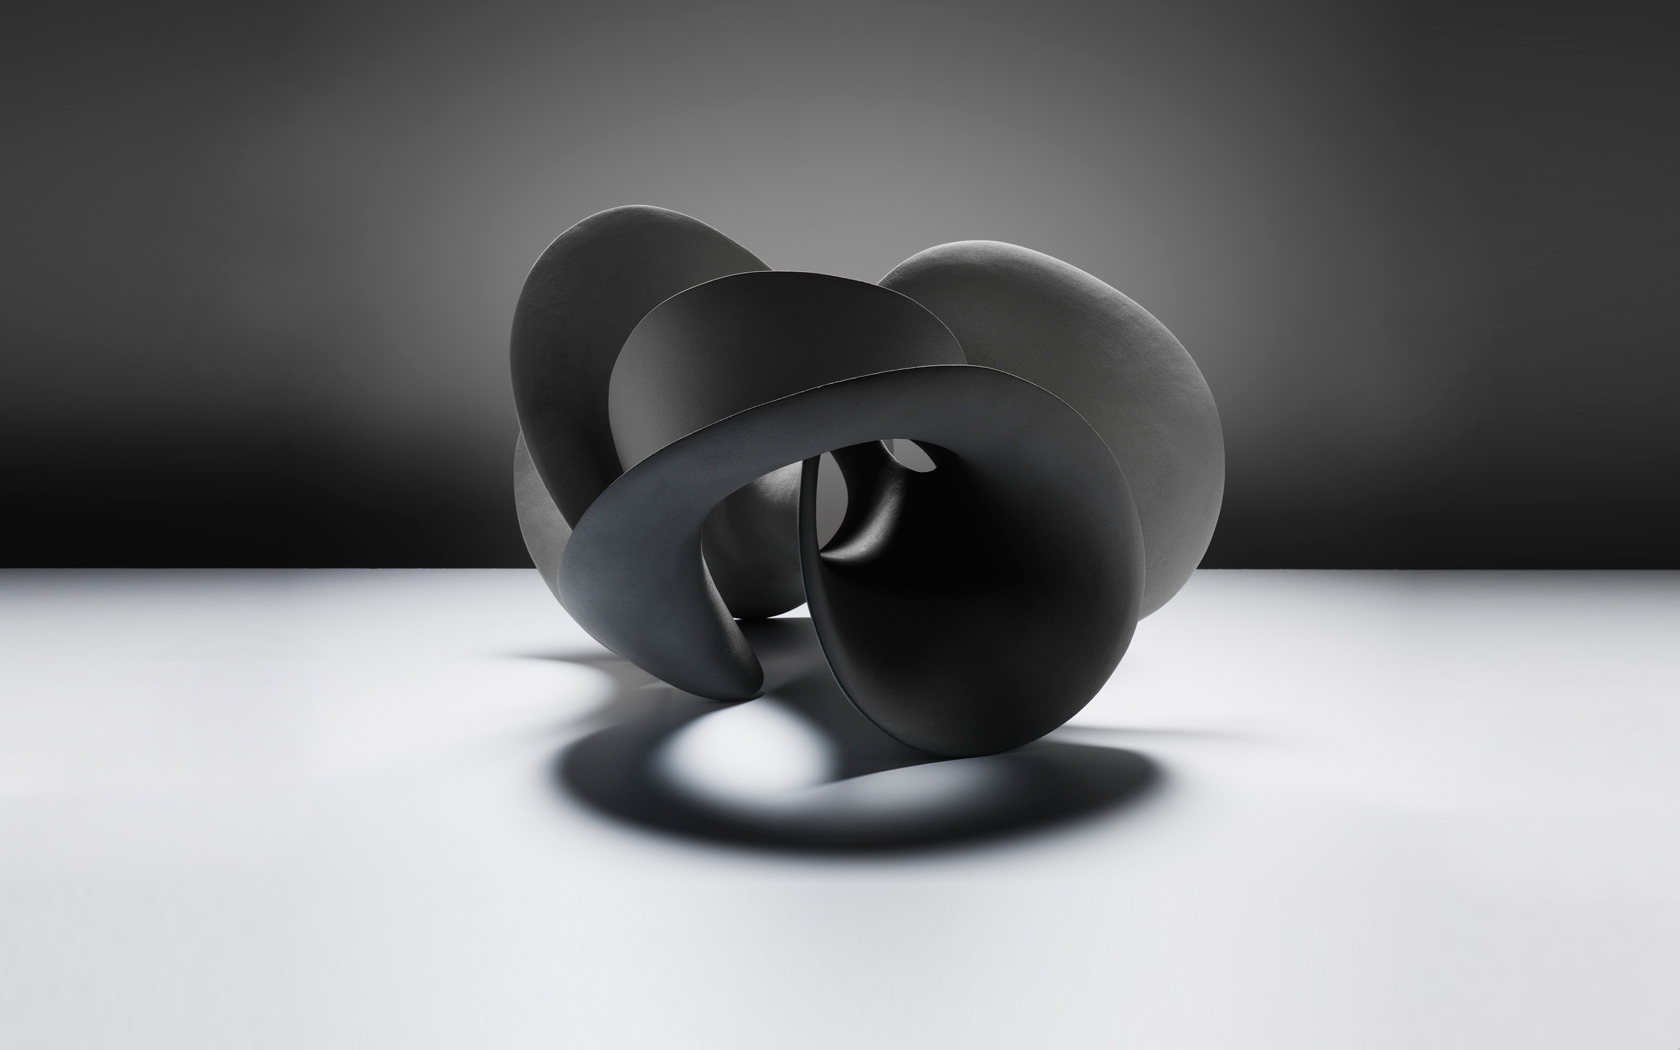 Grey Form, ceramics 60x55x50 cm, Photographer: Michael Harvey